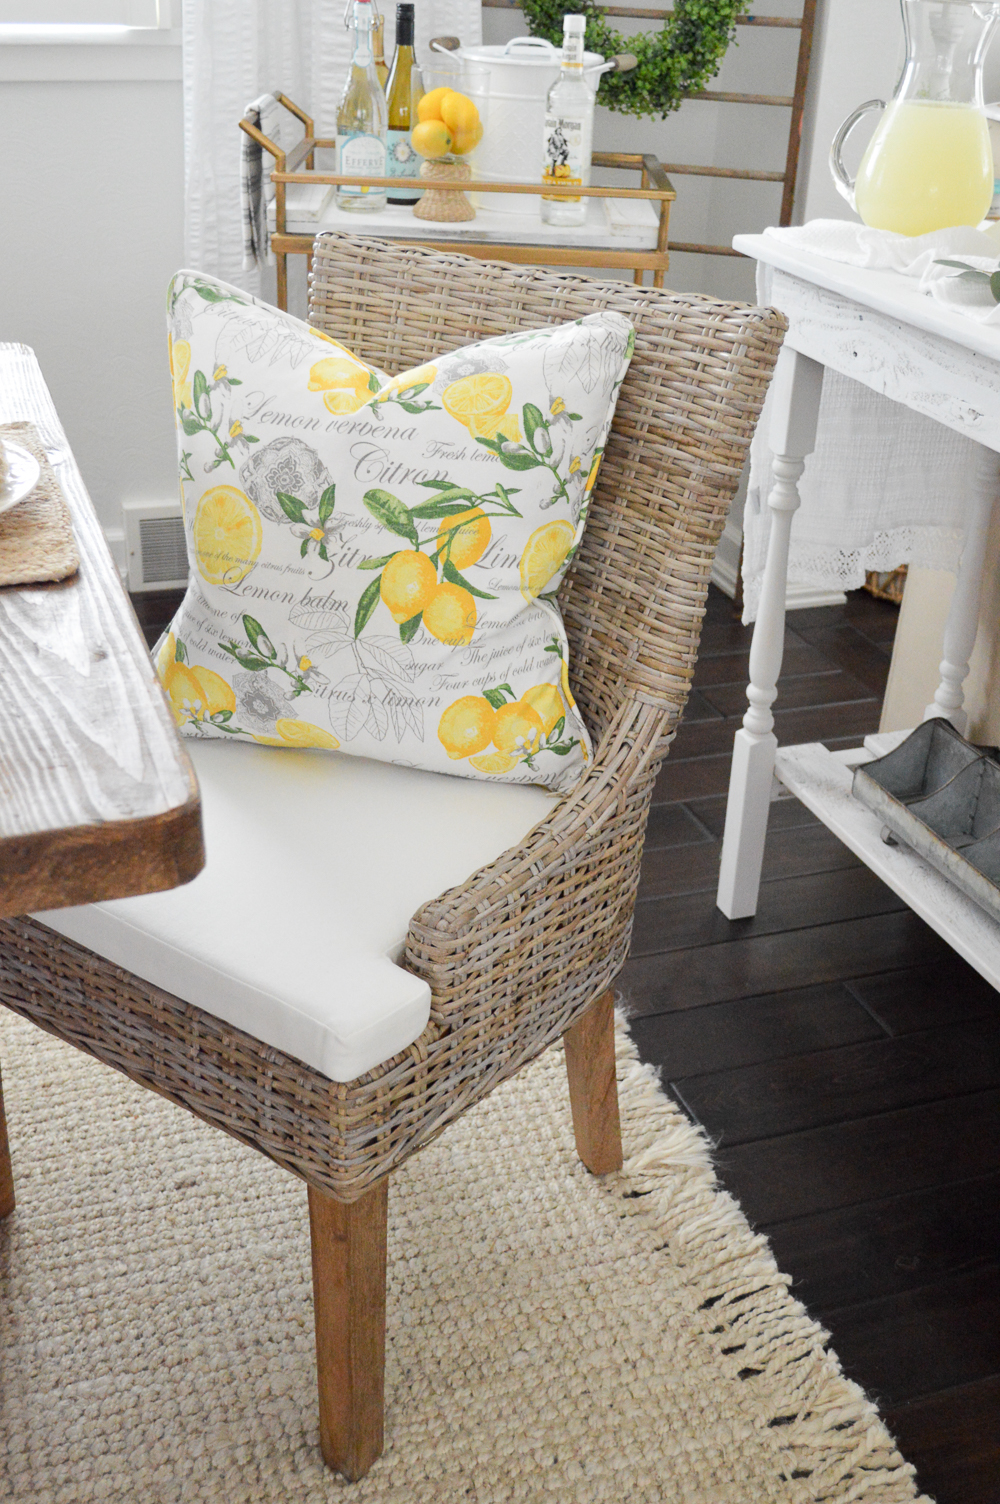 Woven wicker dining chair with washable seat cushion. Love the lemon pillow!